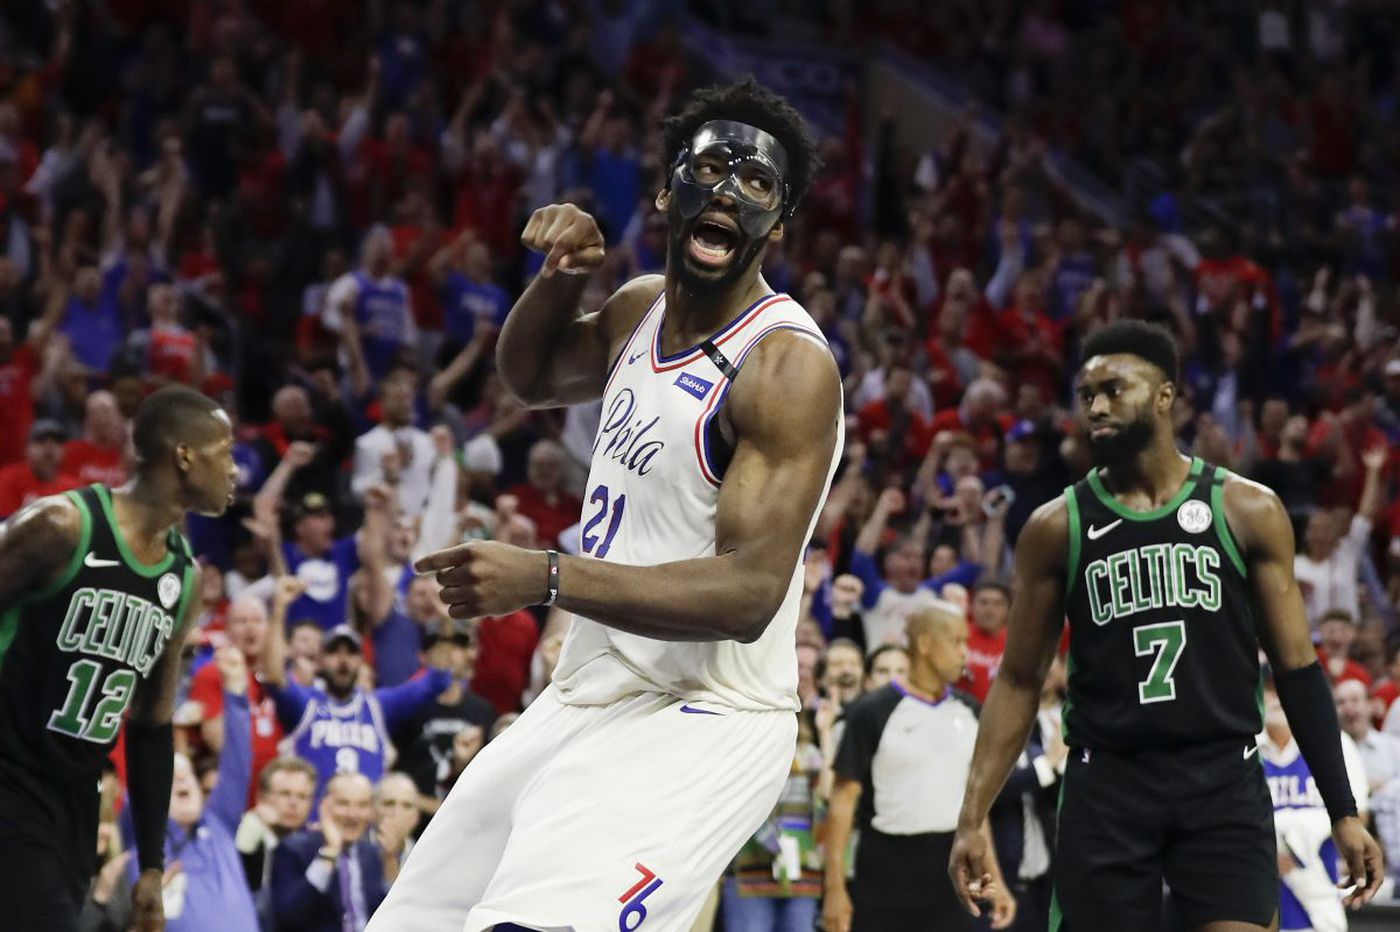 Sixers take their chances against Celtics and live to play again   Bob Ford